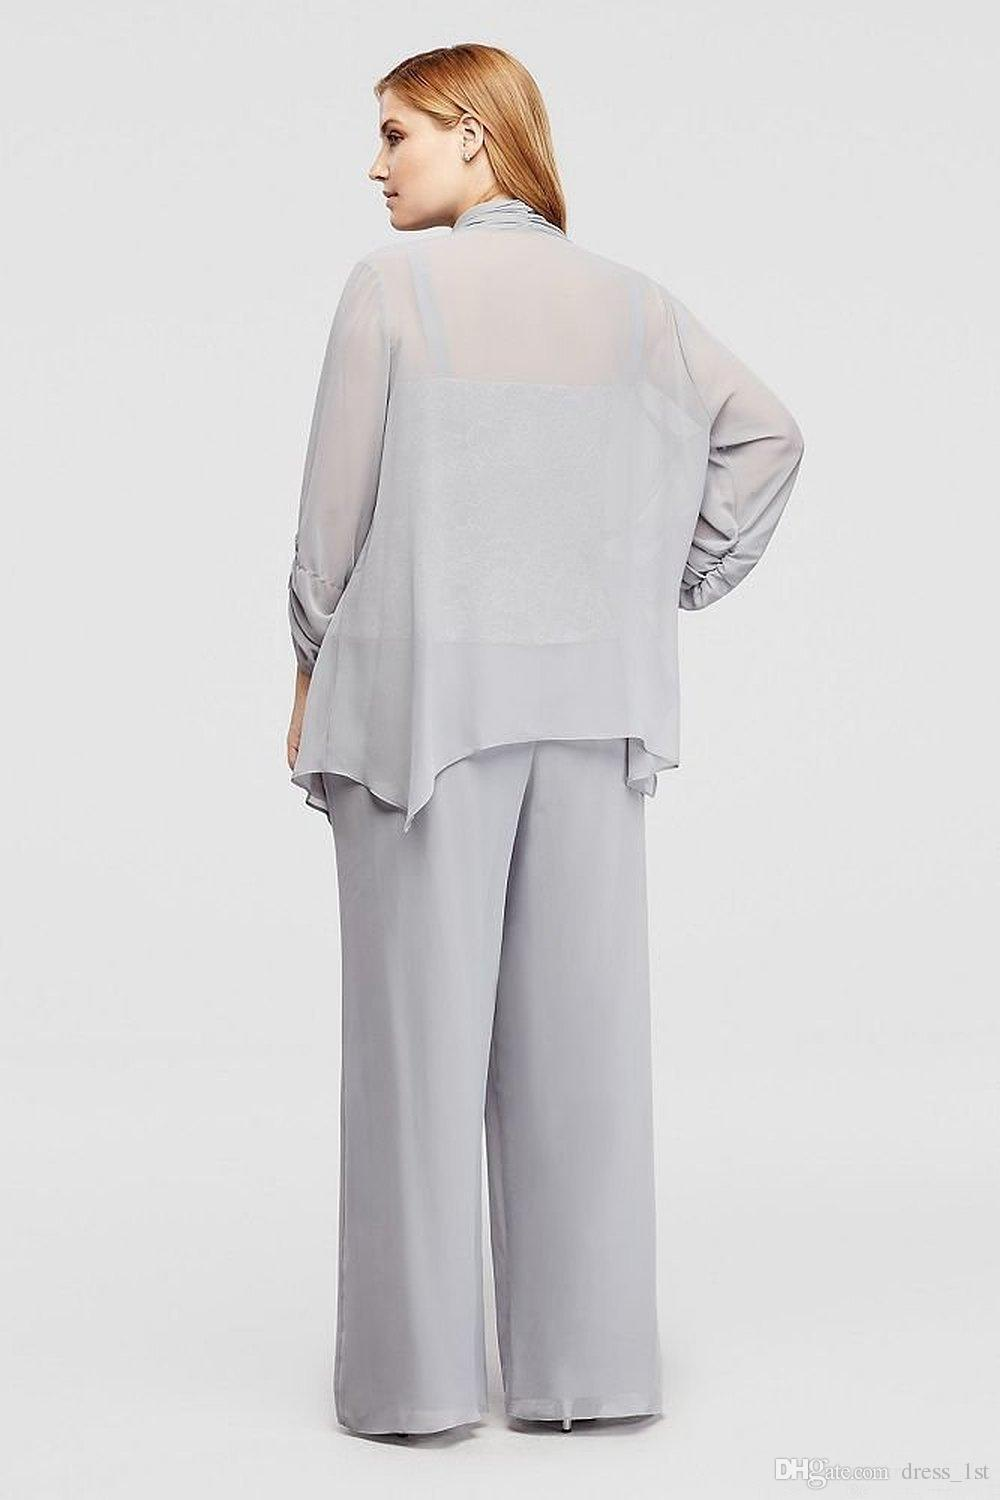 Latest 2016 Silver Chiffon And Lace Spaghetti Mother Of Bride Pant Suits Cheap Long Sleeve Jacket Three Piece Plus Size Custom Made EN7272